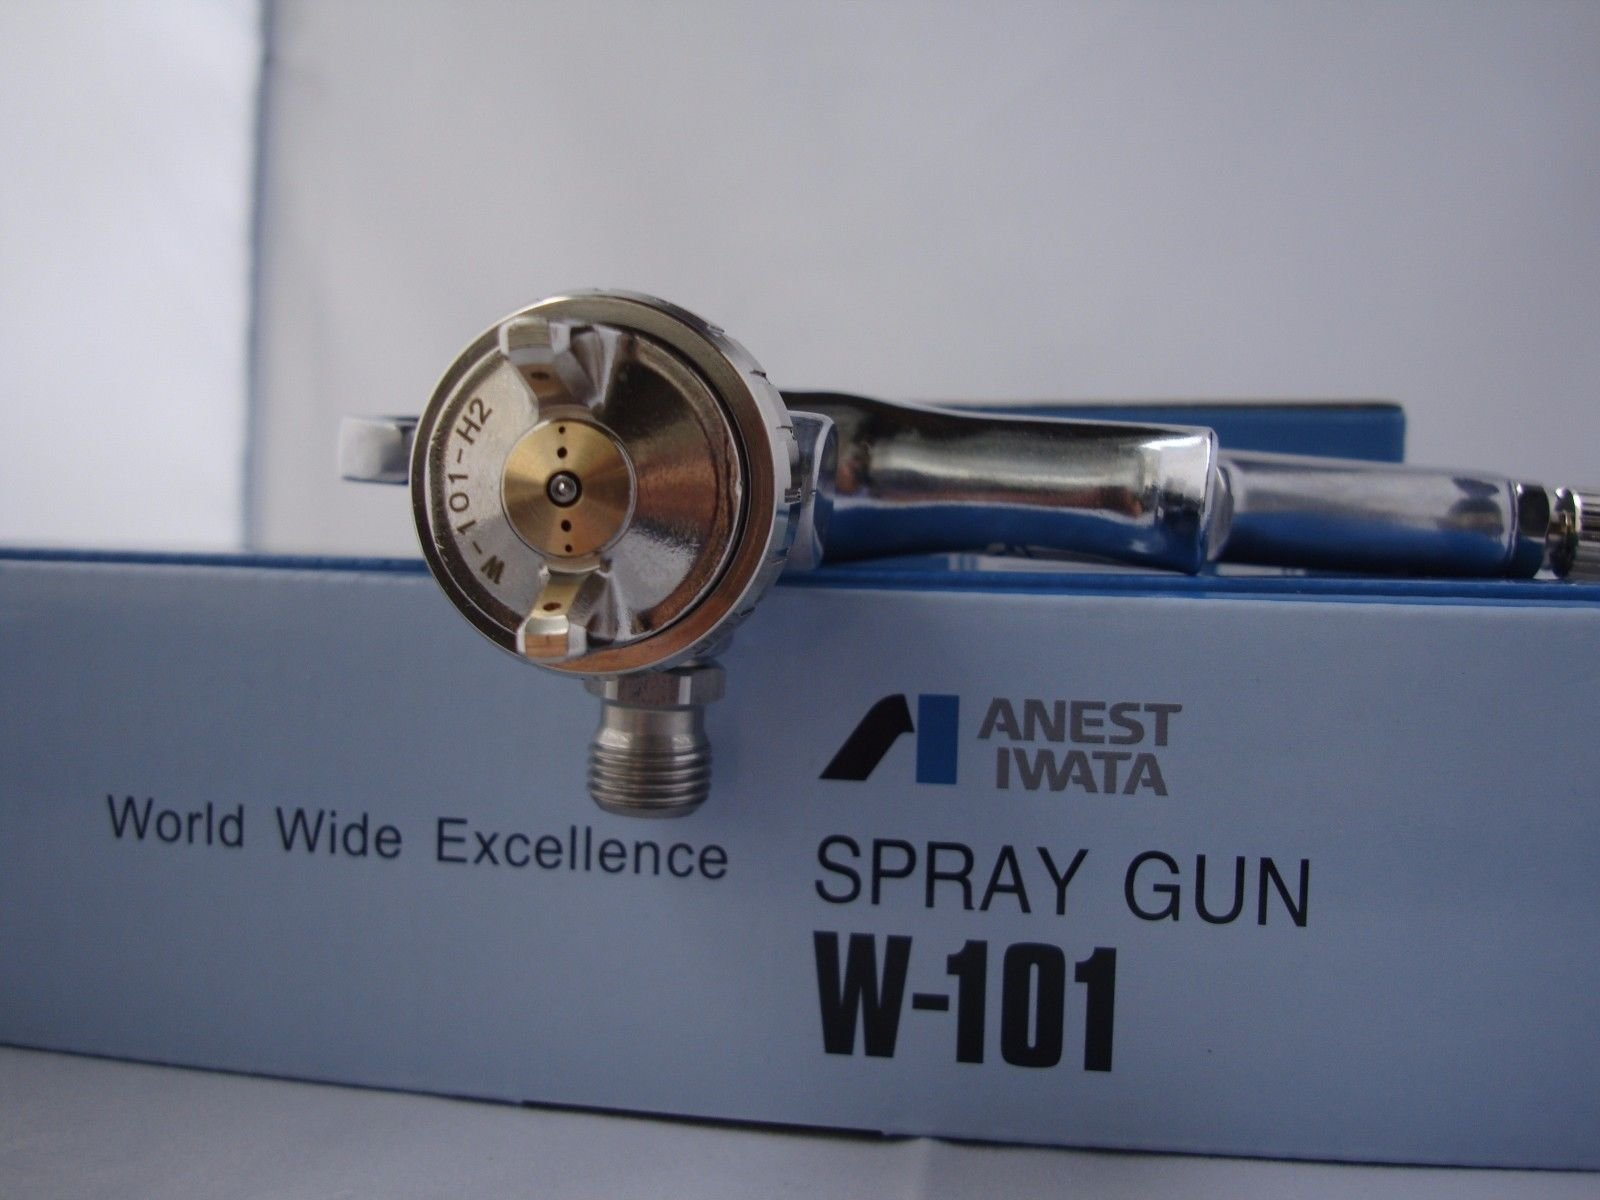 Iwata ANEST Compact Spray Guns W101-152G Gravity Feeds Nozzle φ1.5mm w/t 400ml Cup by Iwata (Image #4)